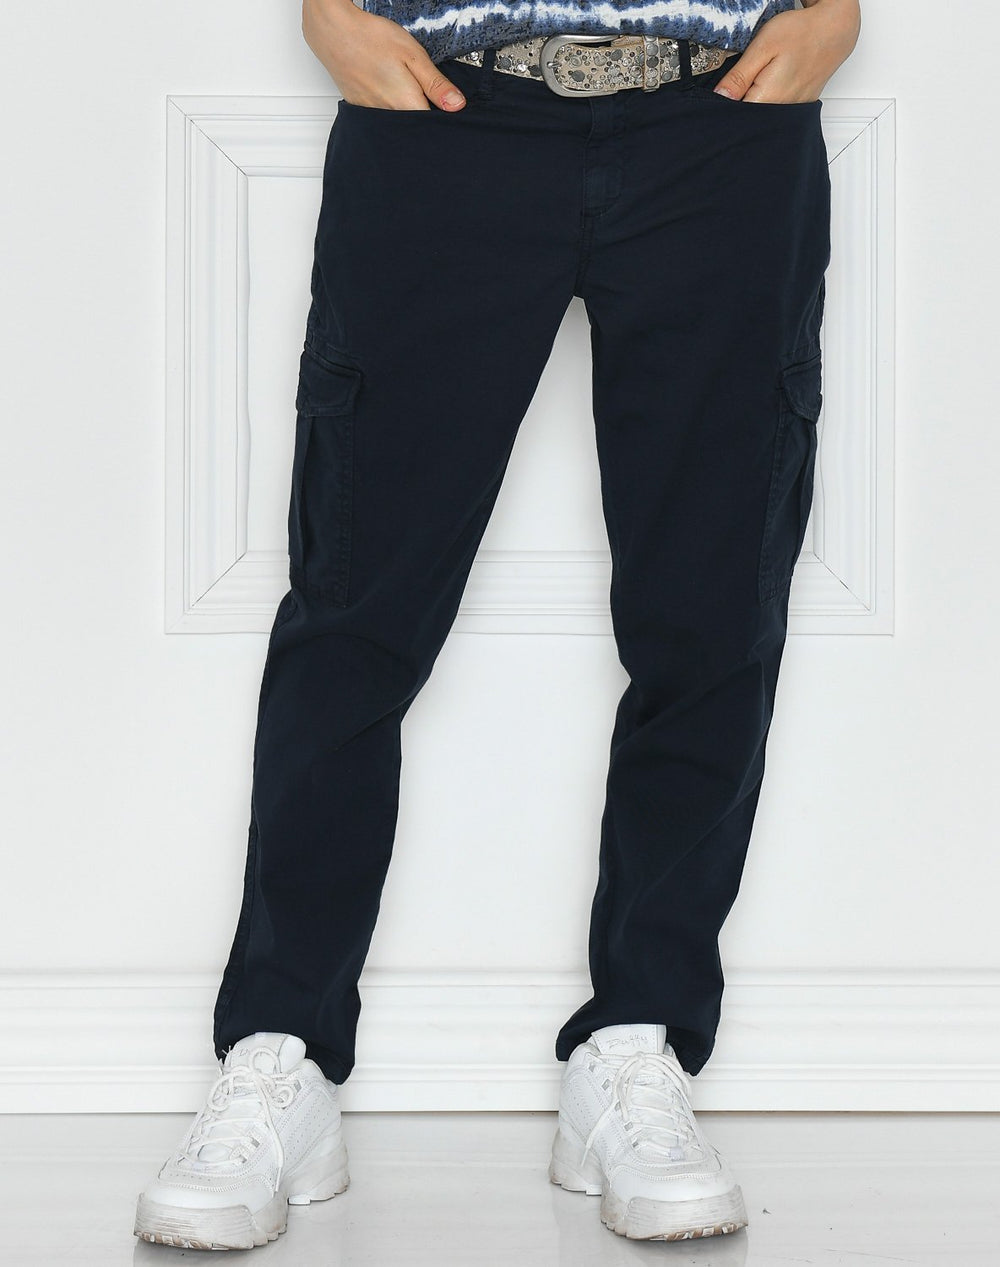 Soya Samira 7 pants navy - Online-Mode